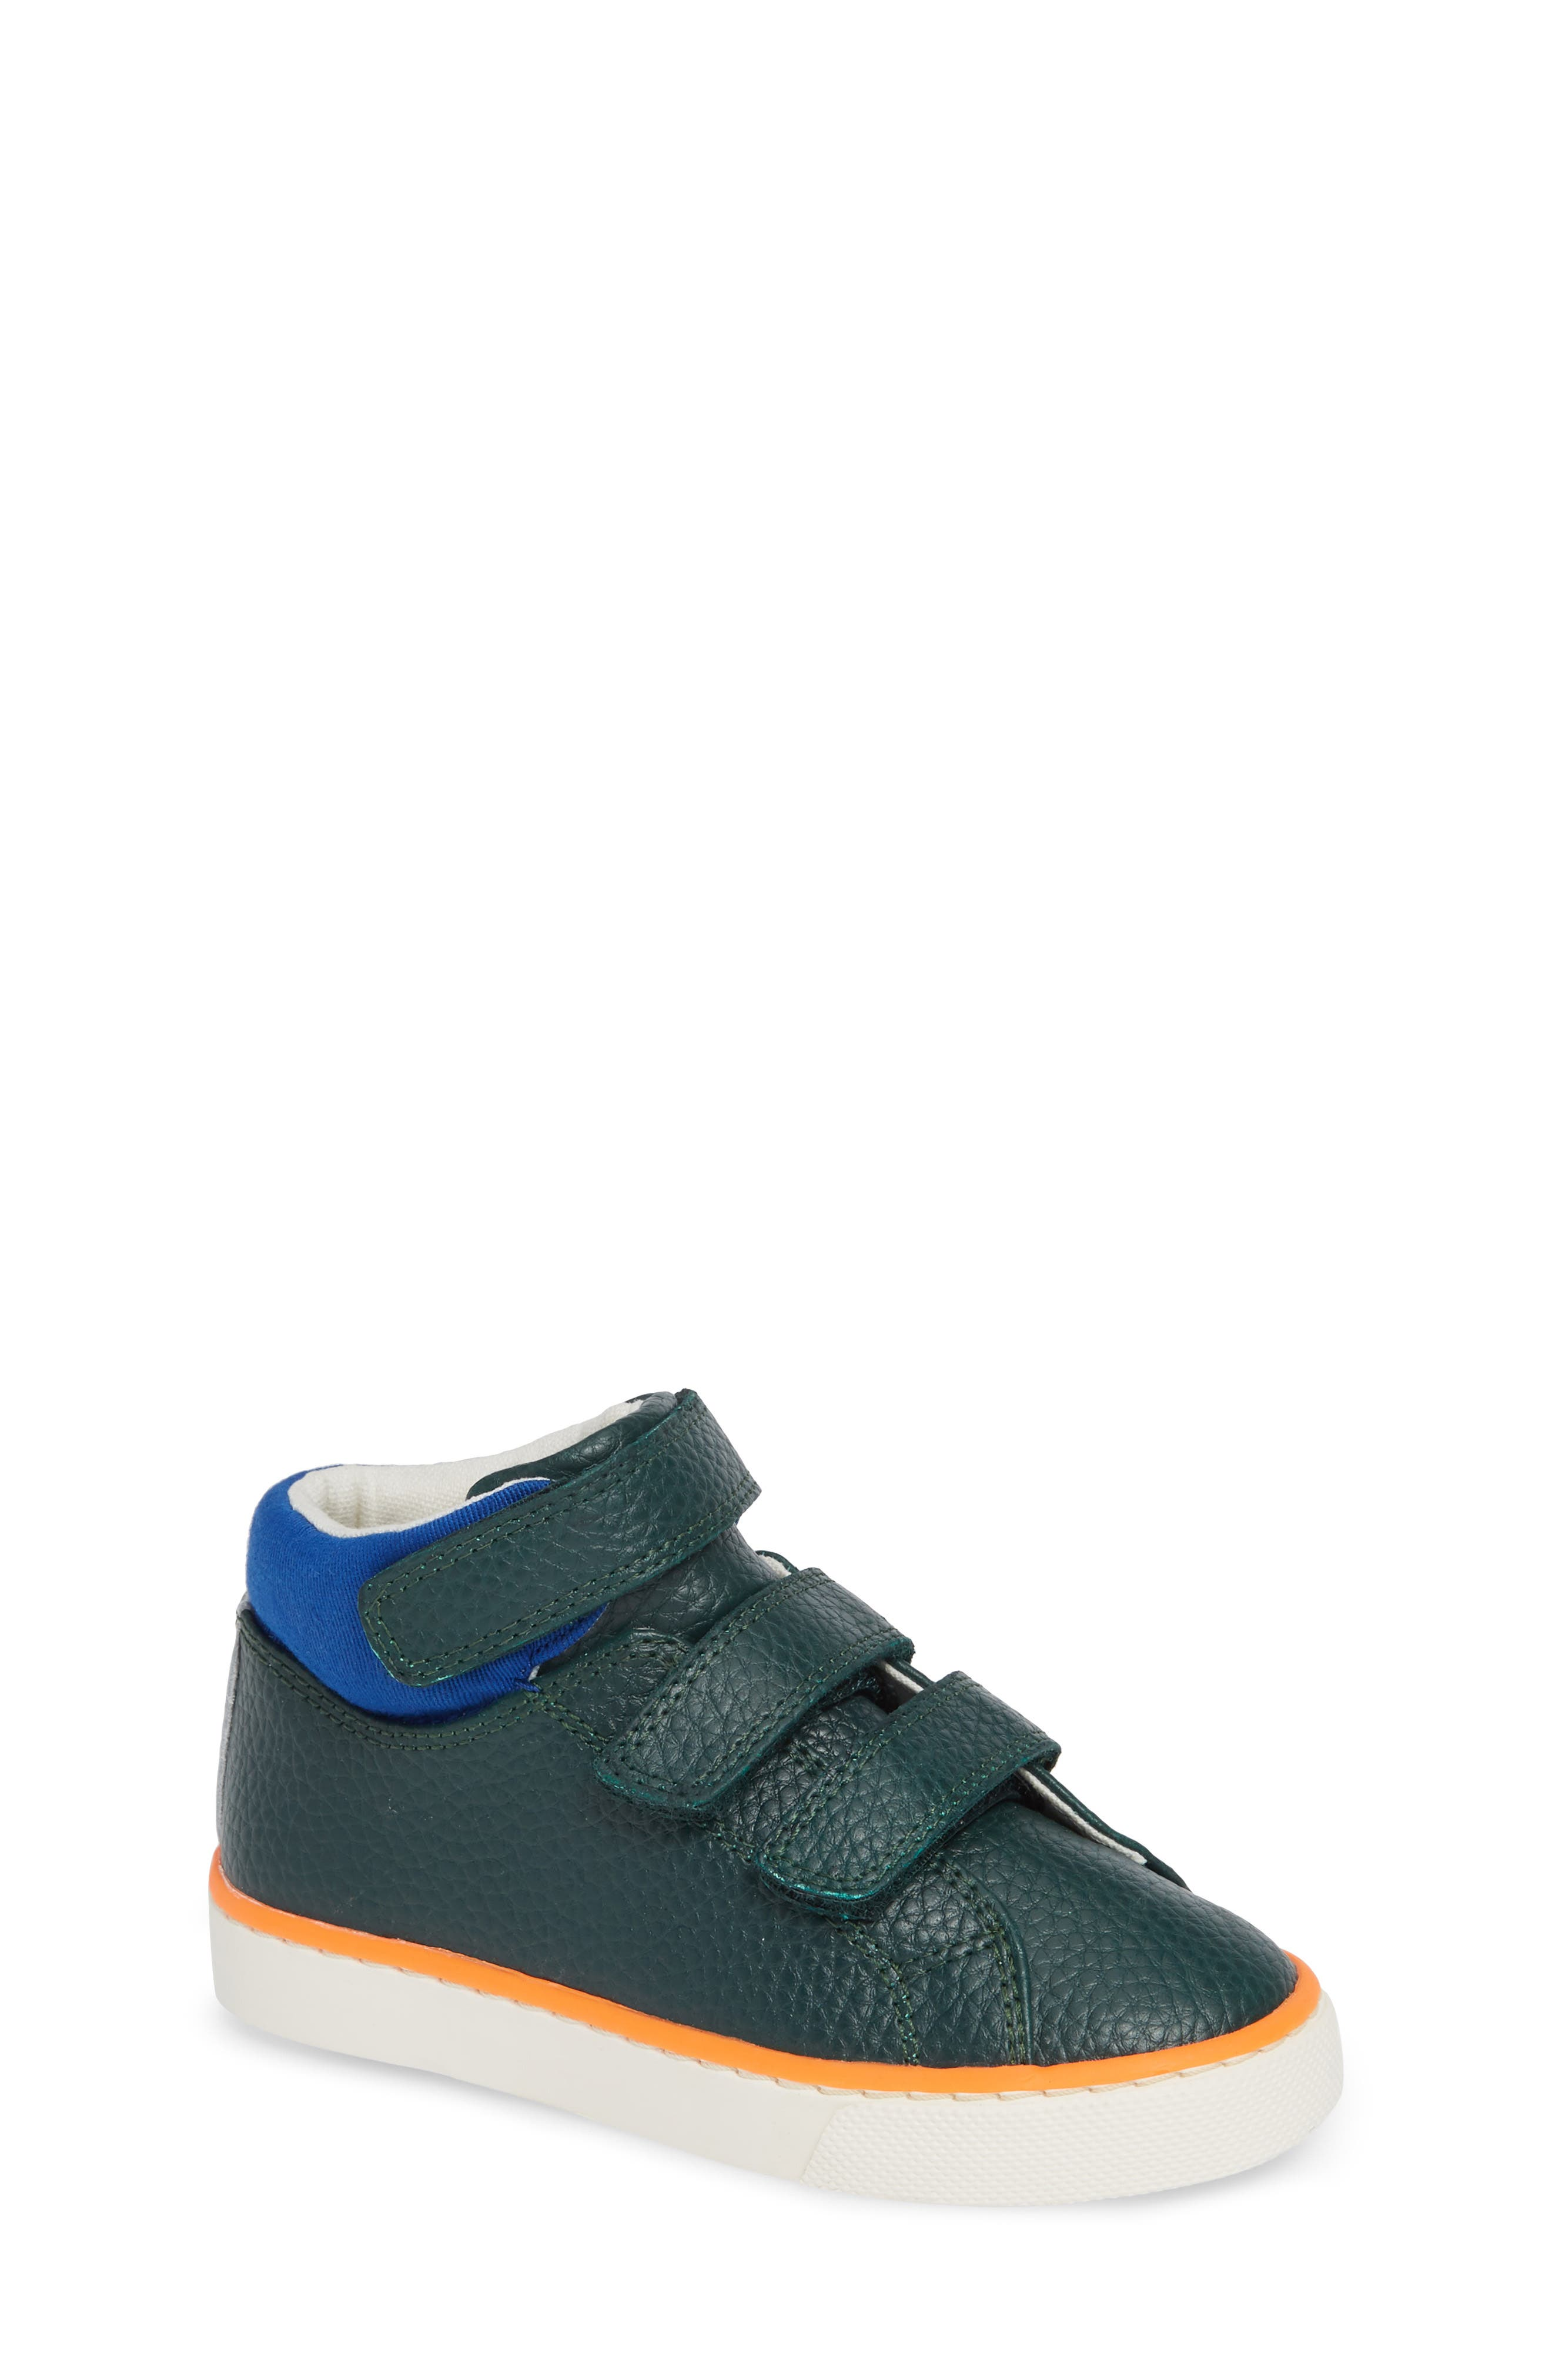 High Top Sneaker,                             Main thumbnail 1, color,                             SCOTTS PINE GREEN